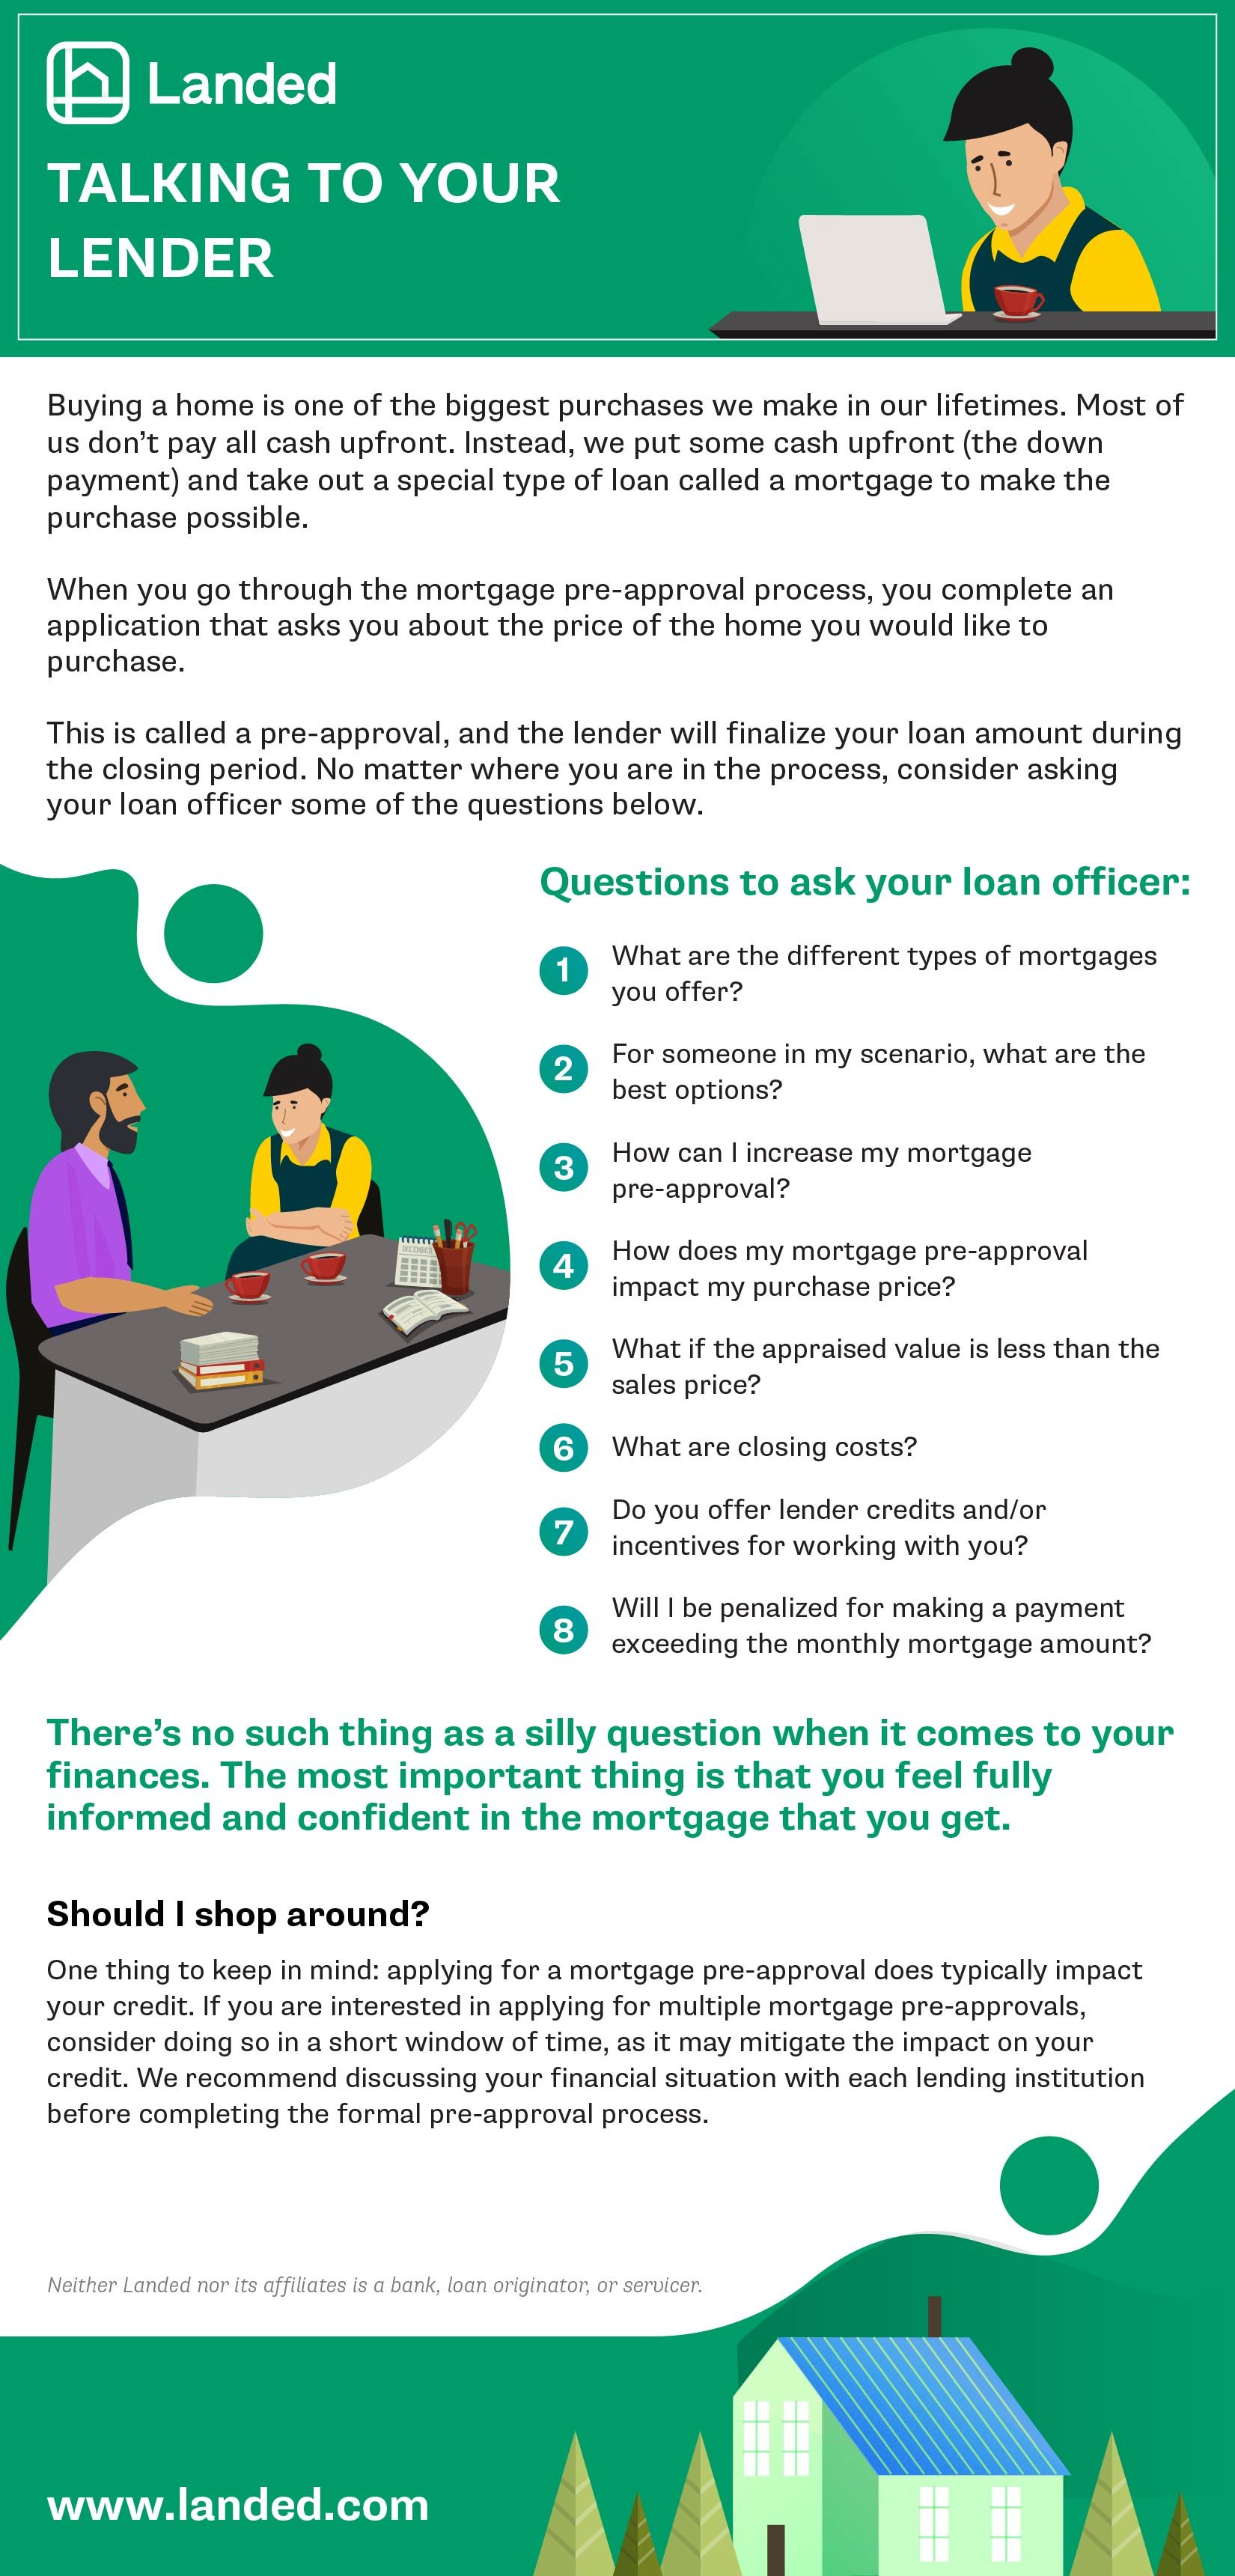 questions-you-should-ask-your-mortgage-lenders-2